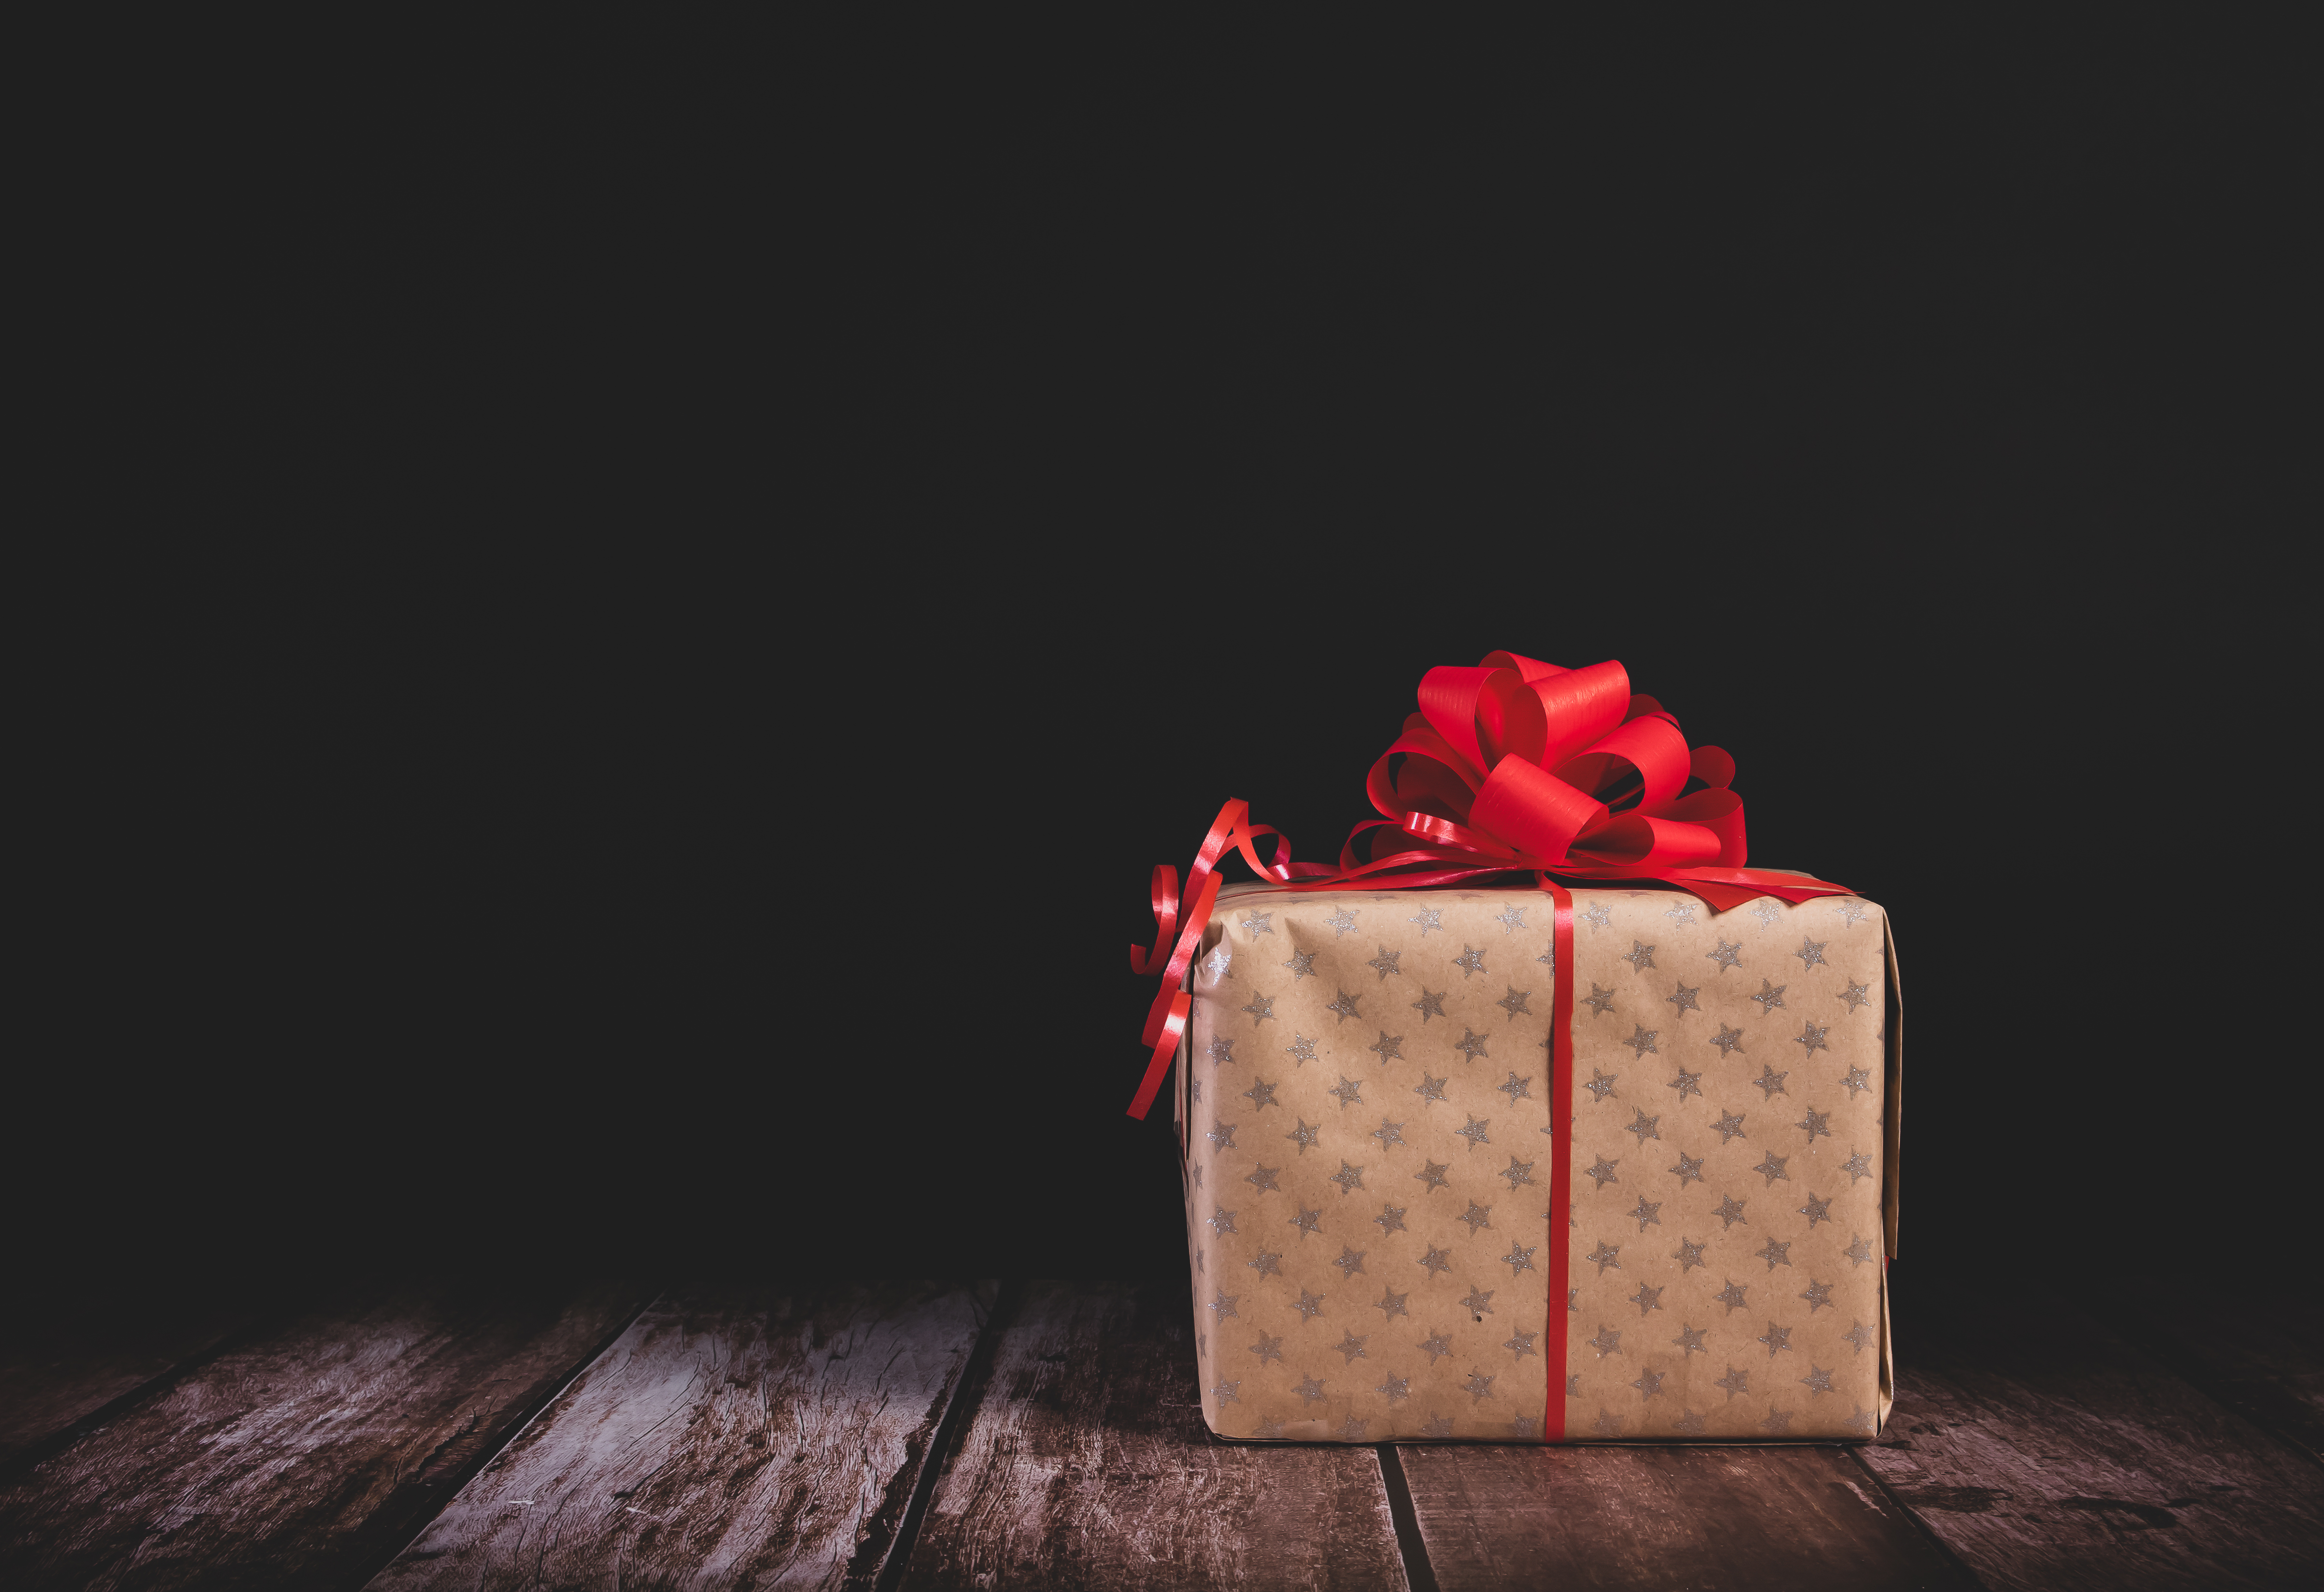 79161 download wallpaper Holidays, Present, Gift, Box, Bow, Holiday screensavers and pictures for free